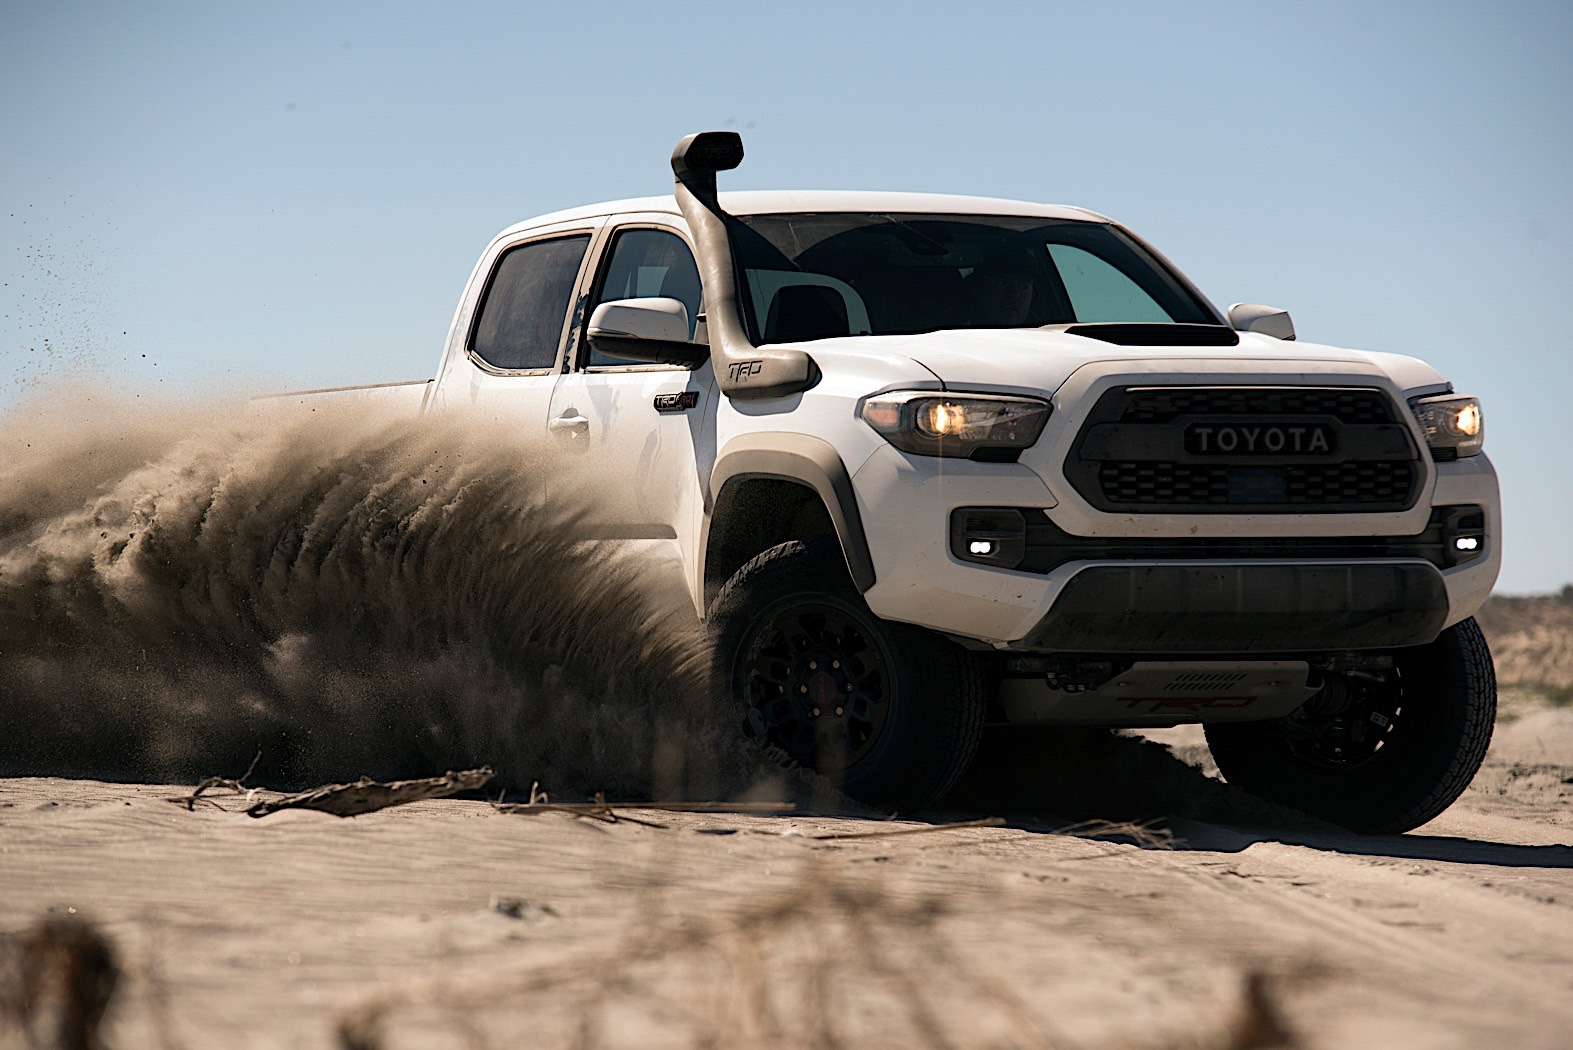 Toyota TRD Pro models debut in Chicago